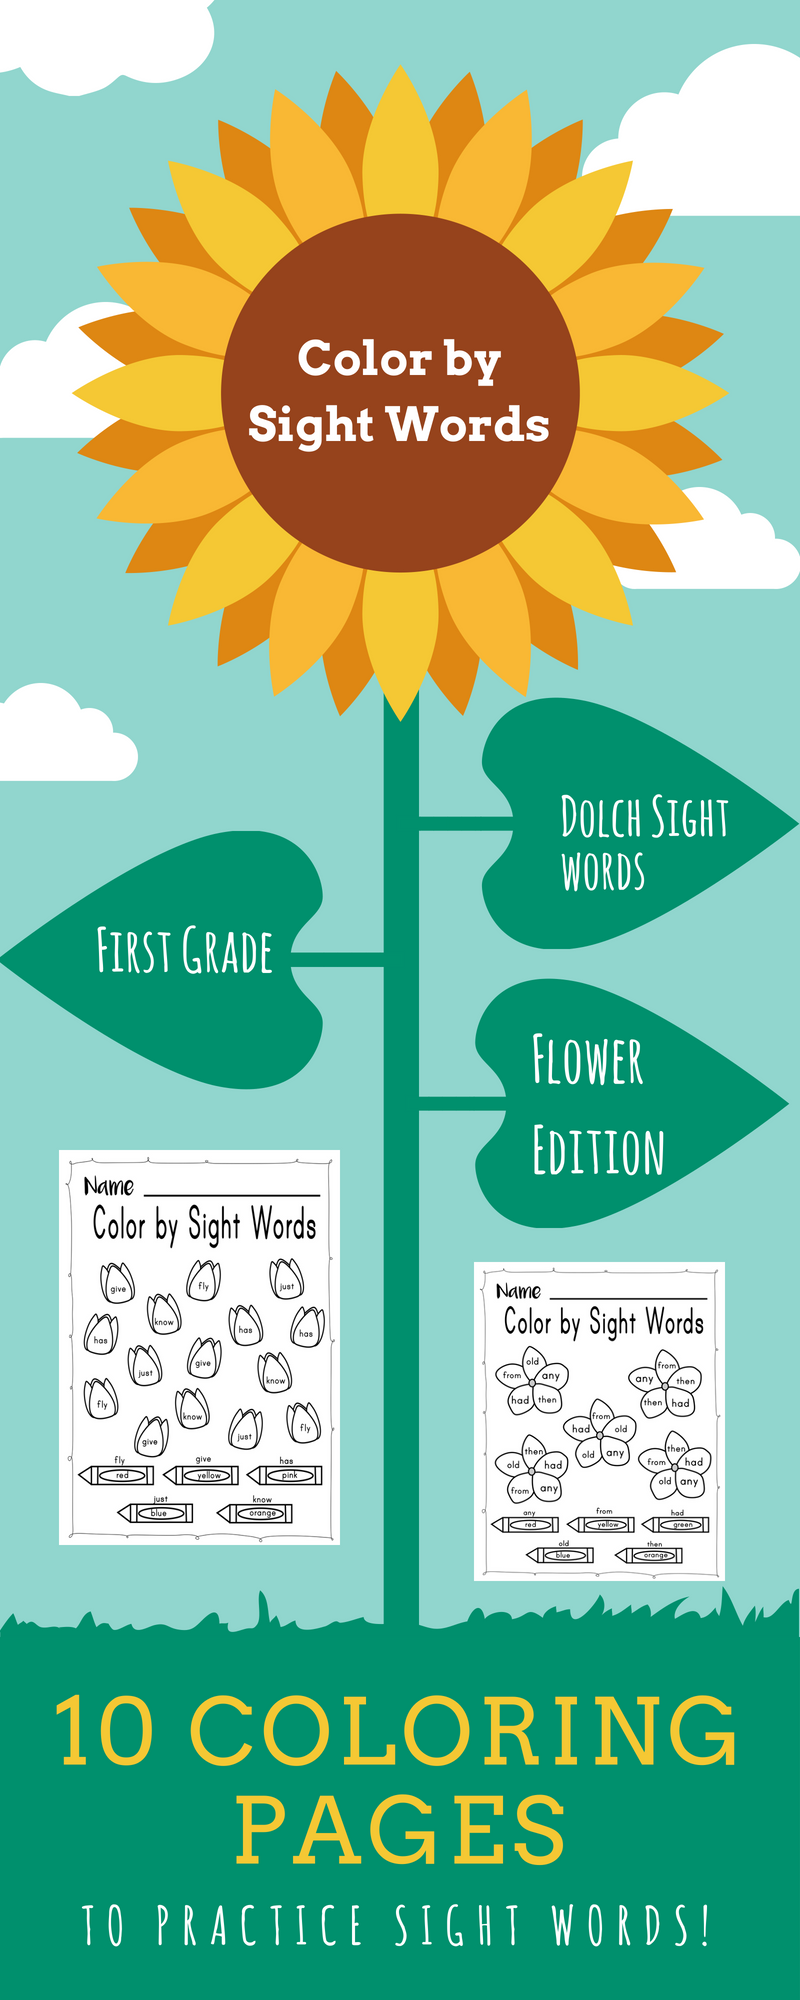 Color by Sight Words - Coloring Page - First Grade | Worksheets ...